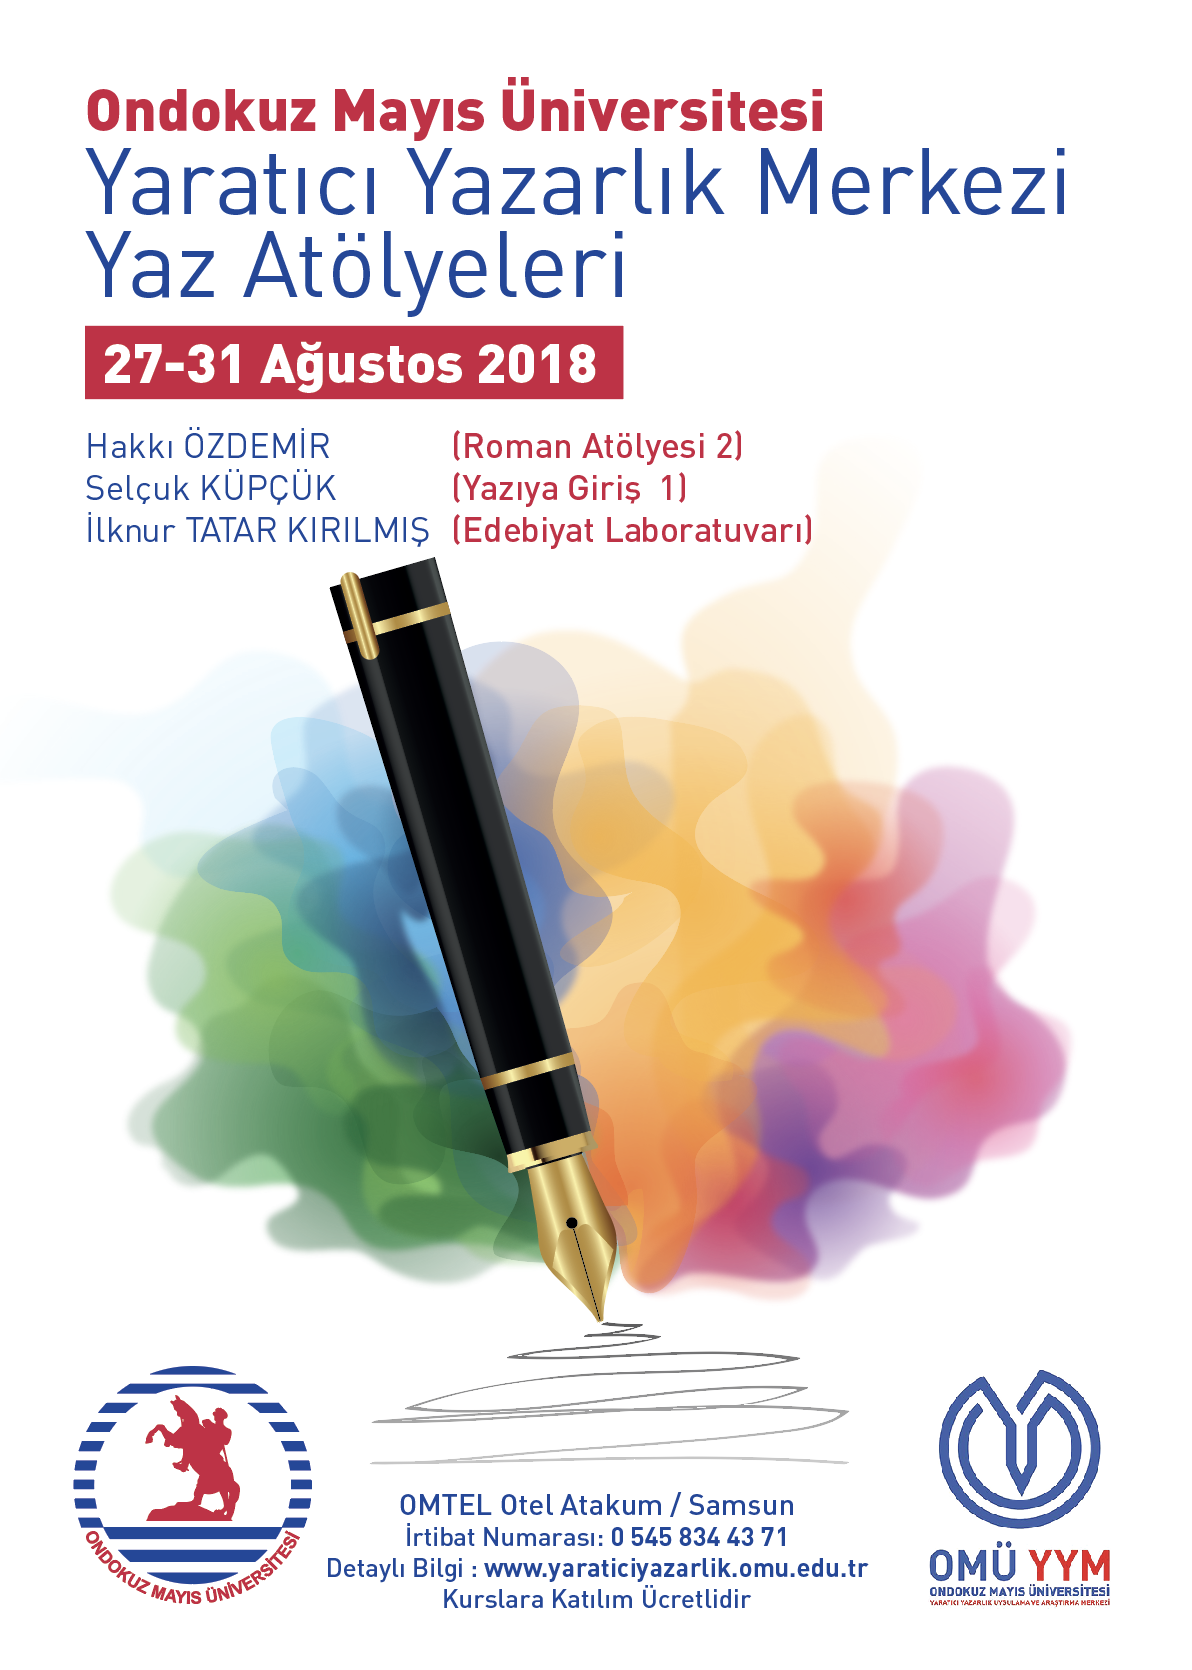 http://www.omu.edu.tr/sites/default/files/yaz_atolyesi_2018.png